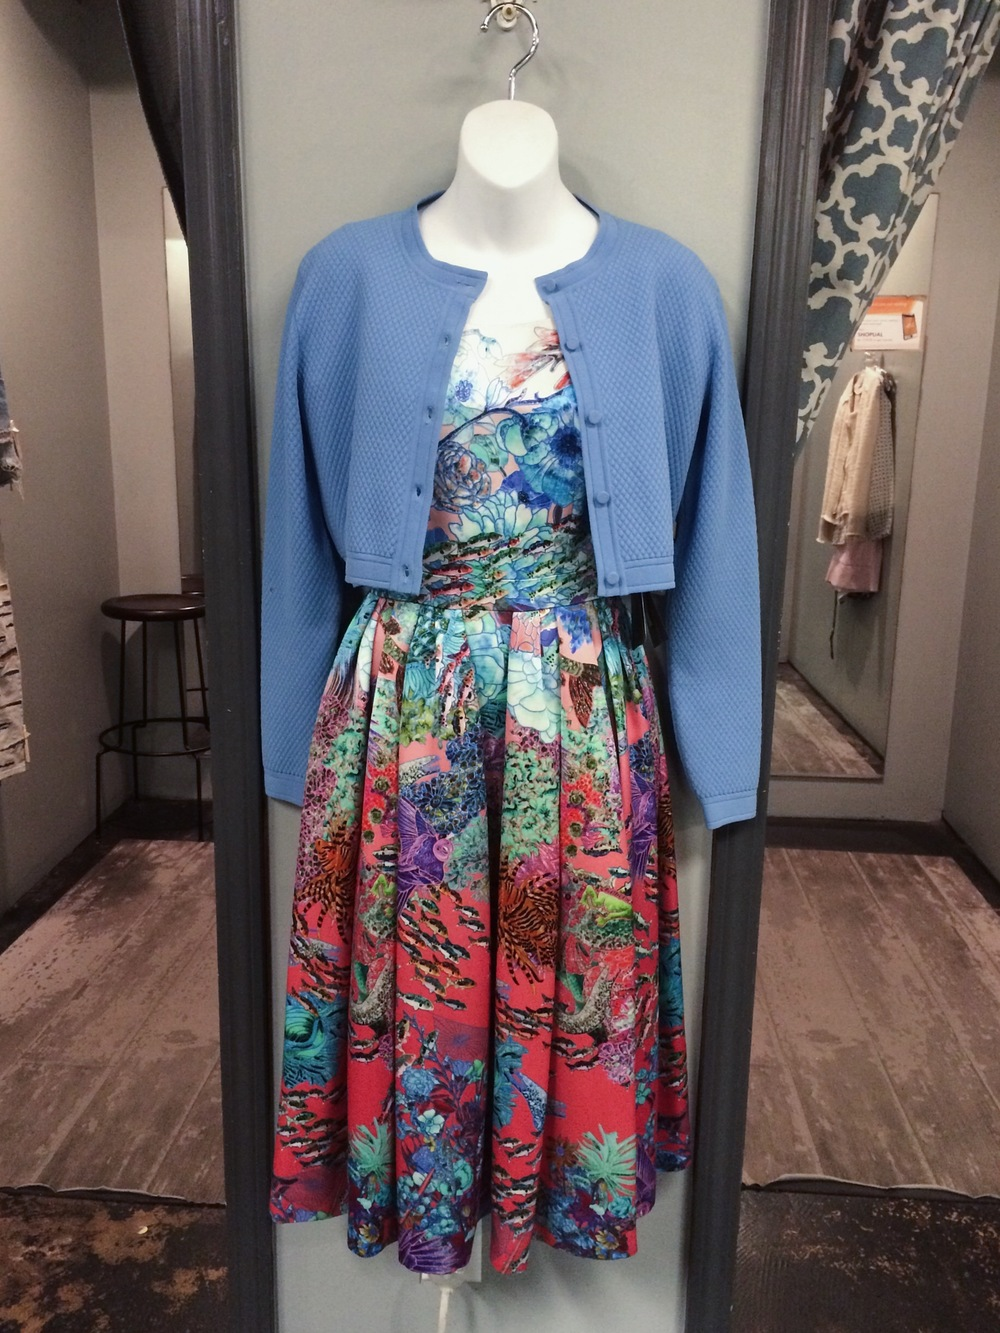 Mary Katrantzou Dress Originally $3600 Now $1080 and Gucci Sweater Originally $1350 Now $405_Photo by Stella Shops.jpg